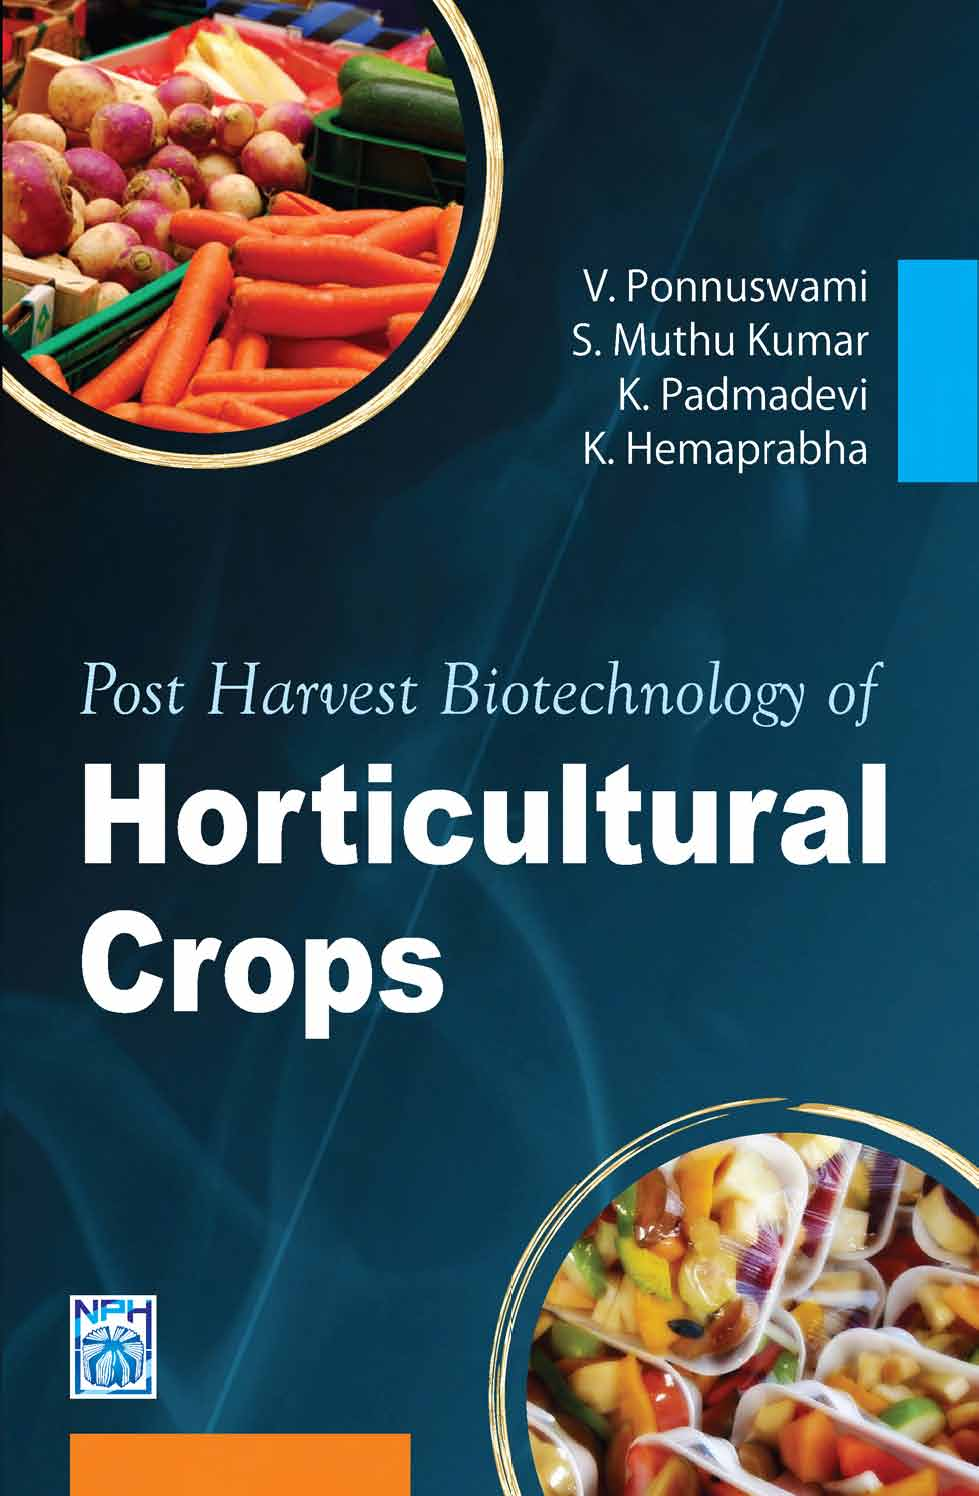 Post Harvest Biotechnology of Horticulture Crops